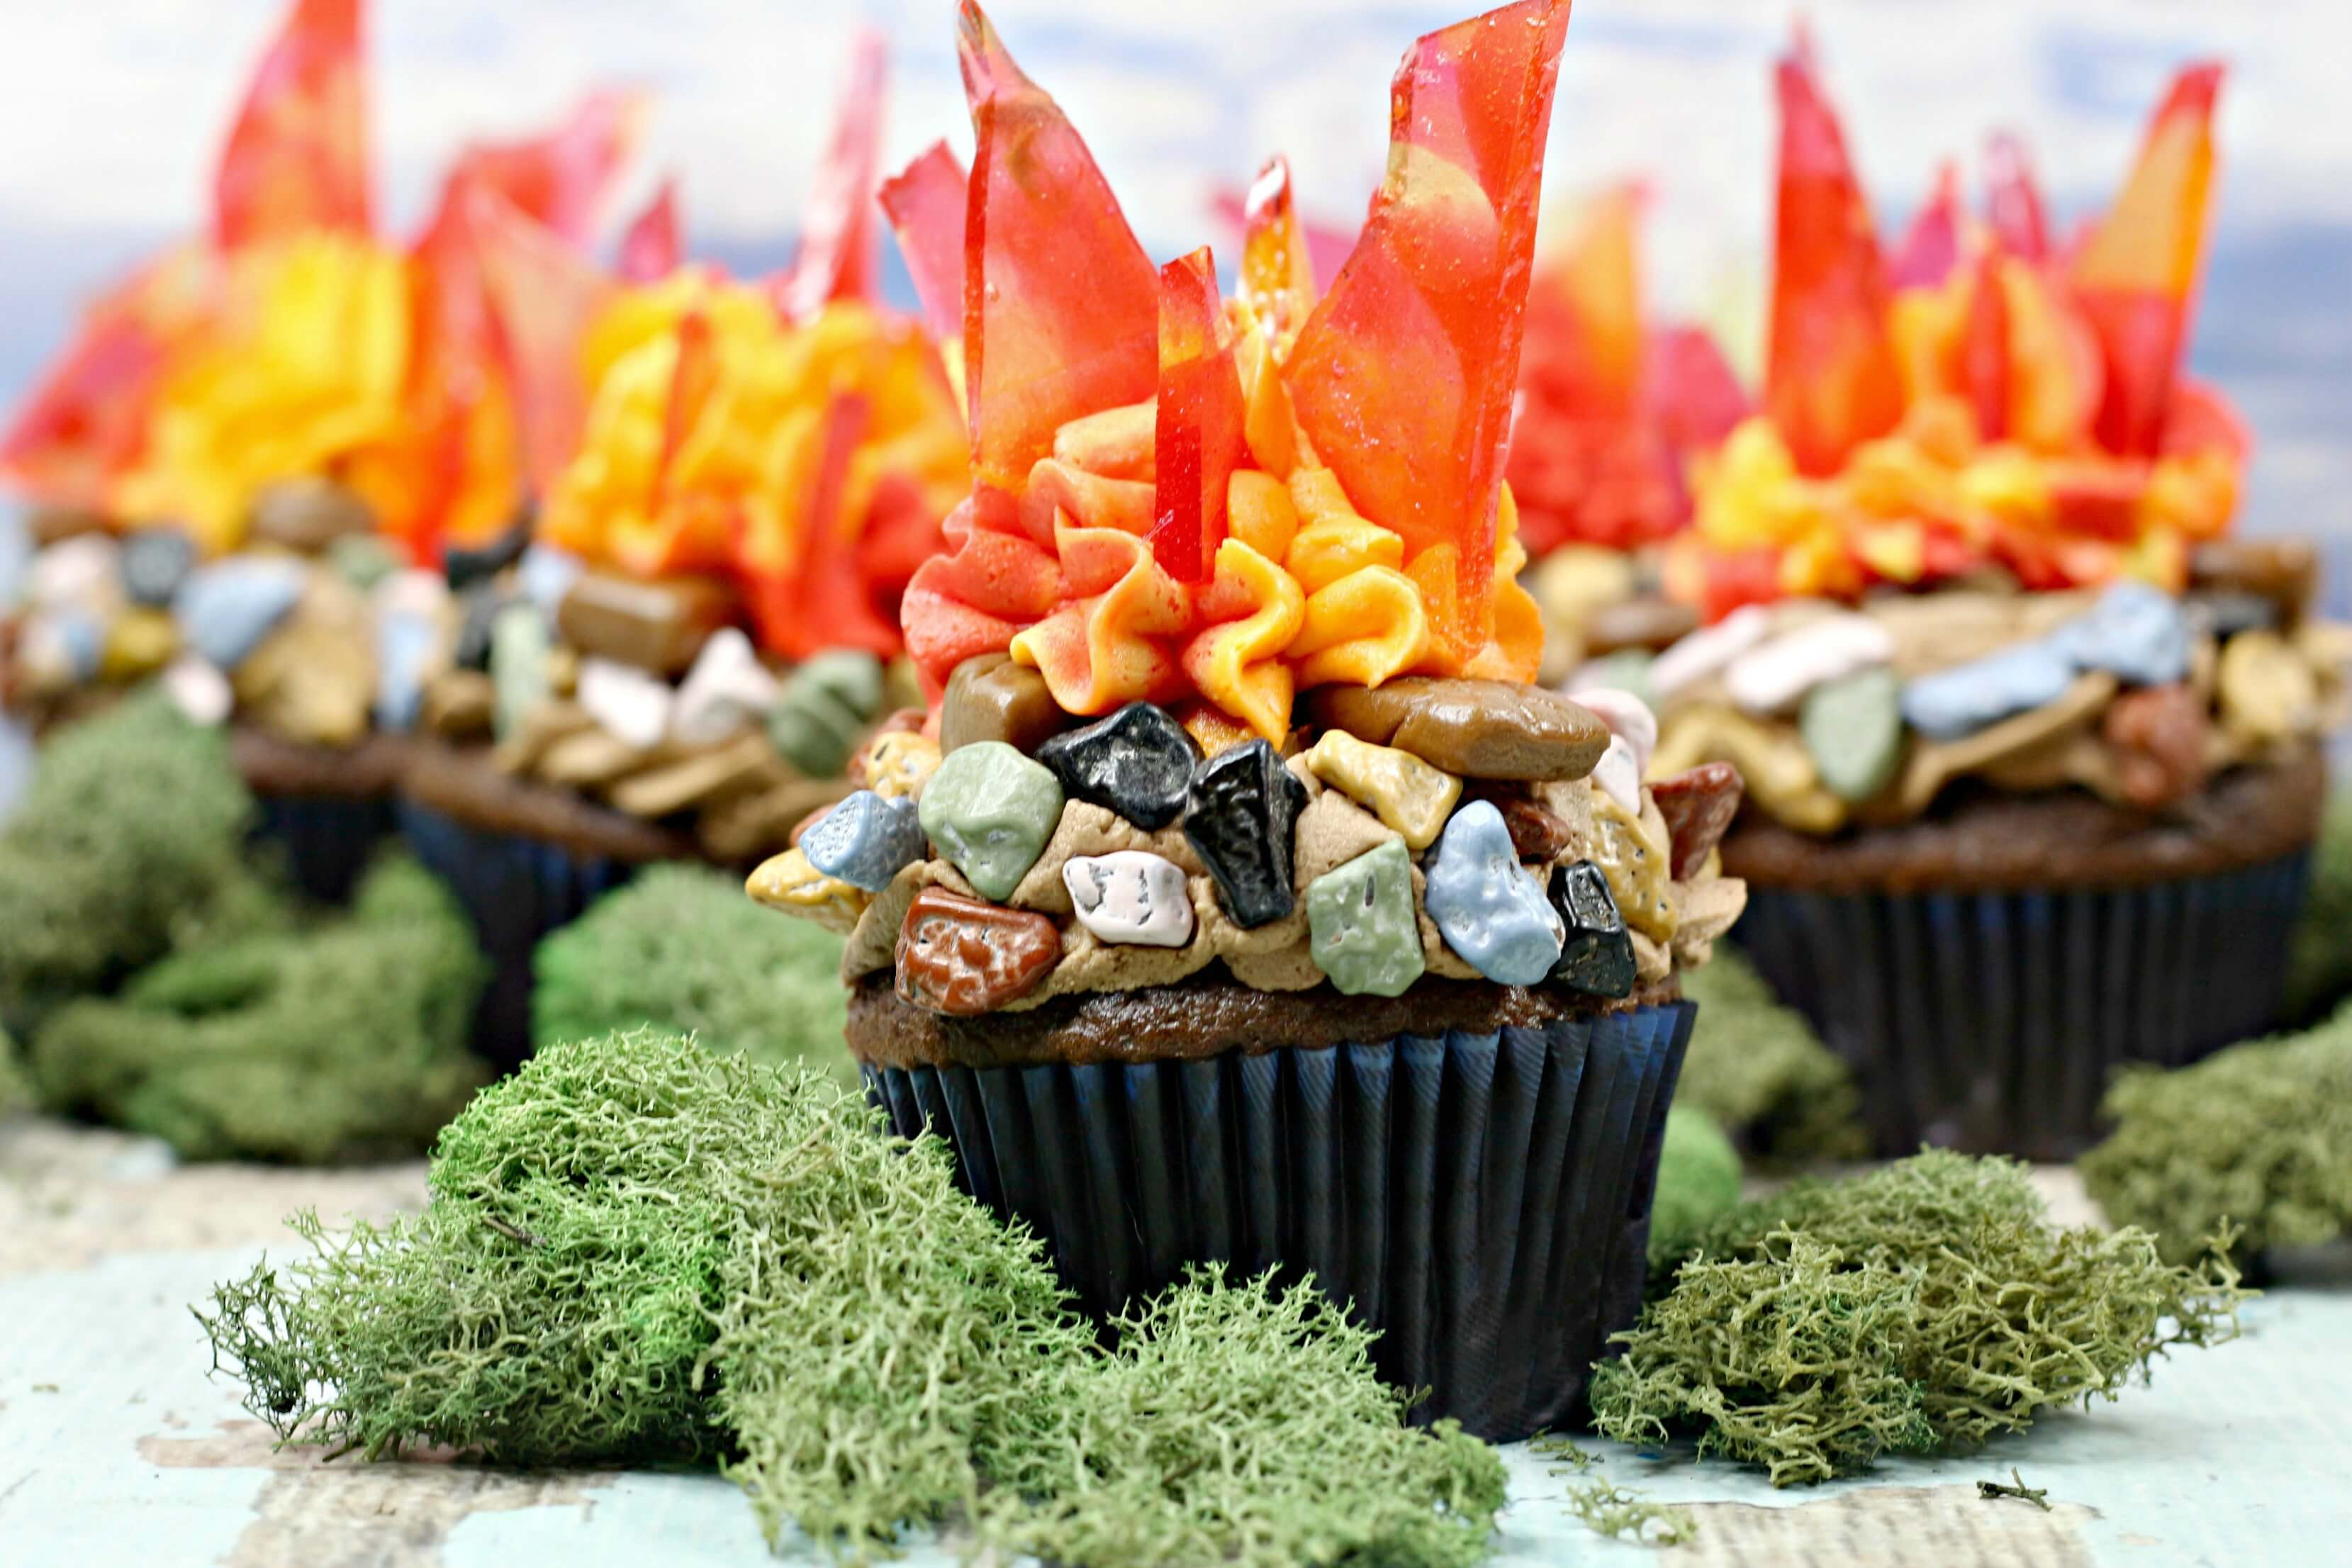 Multiple Campfire Cupcakes surrounded by moss.